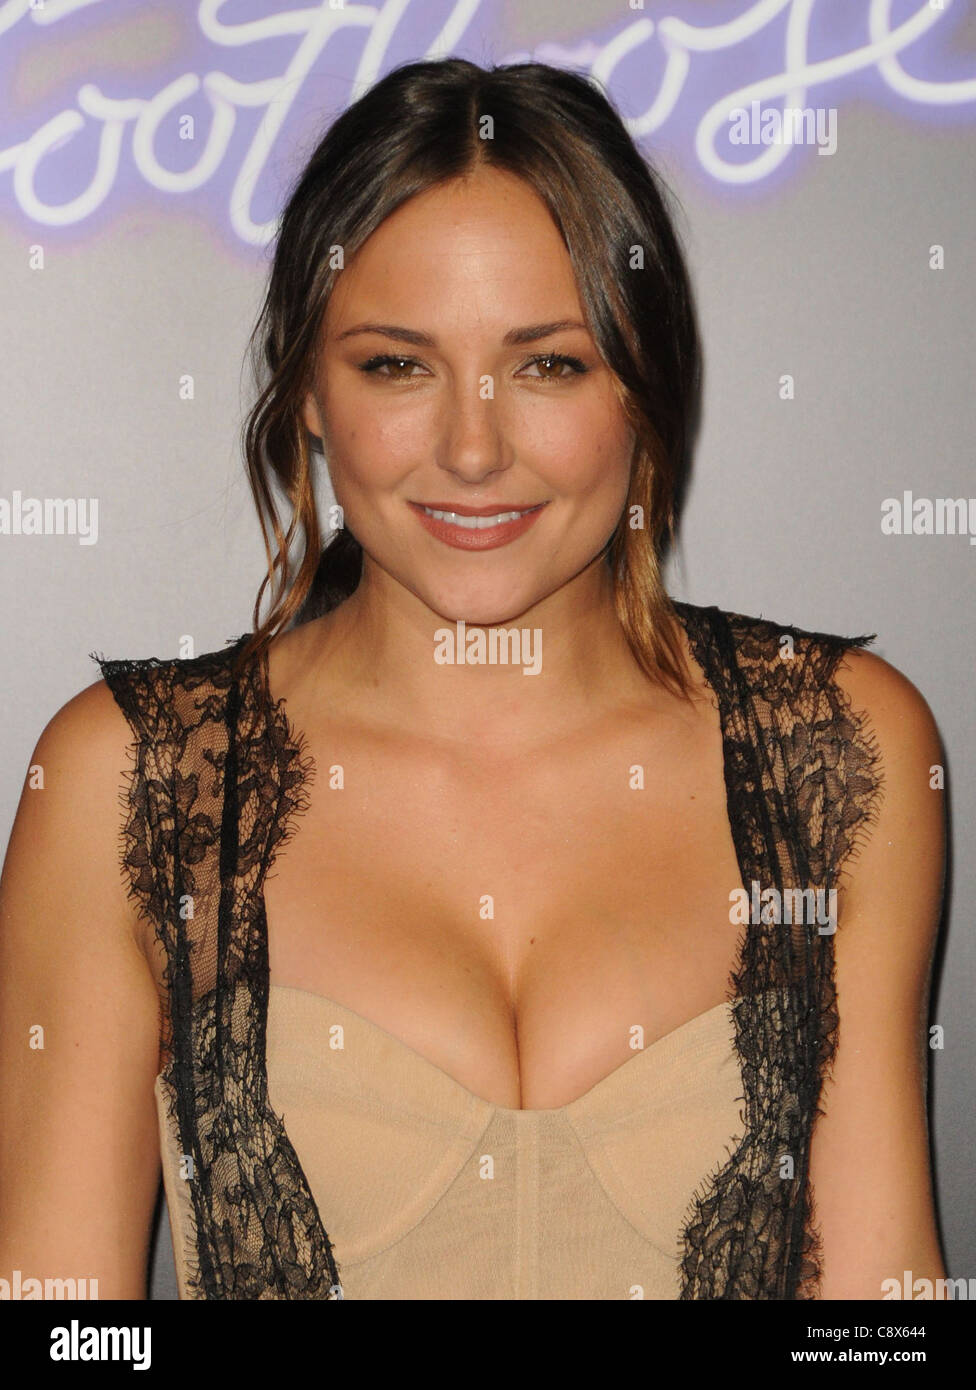 nudes Cleavage Brianna Evigan (42 photo) Topless, 2019, cleavage